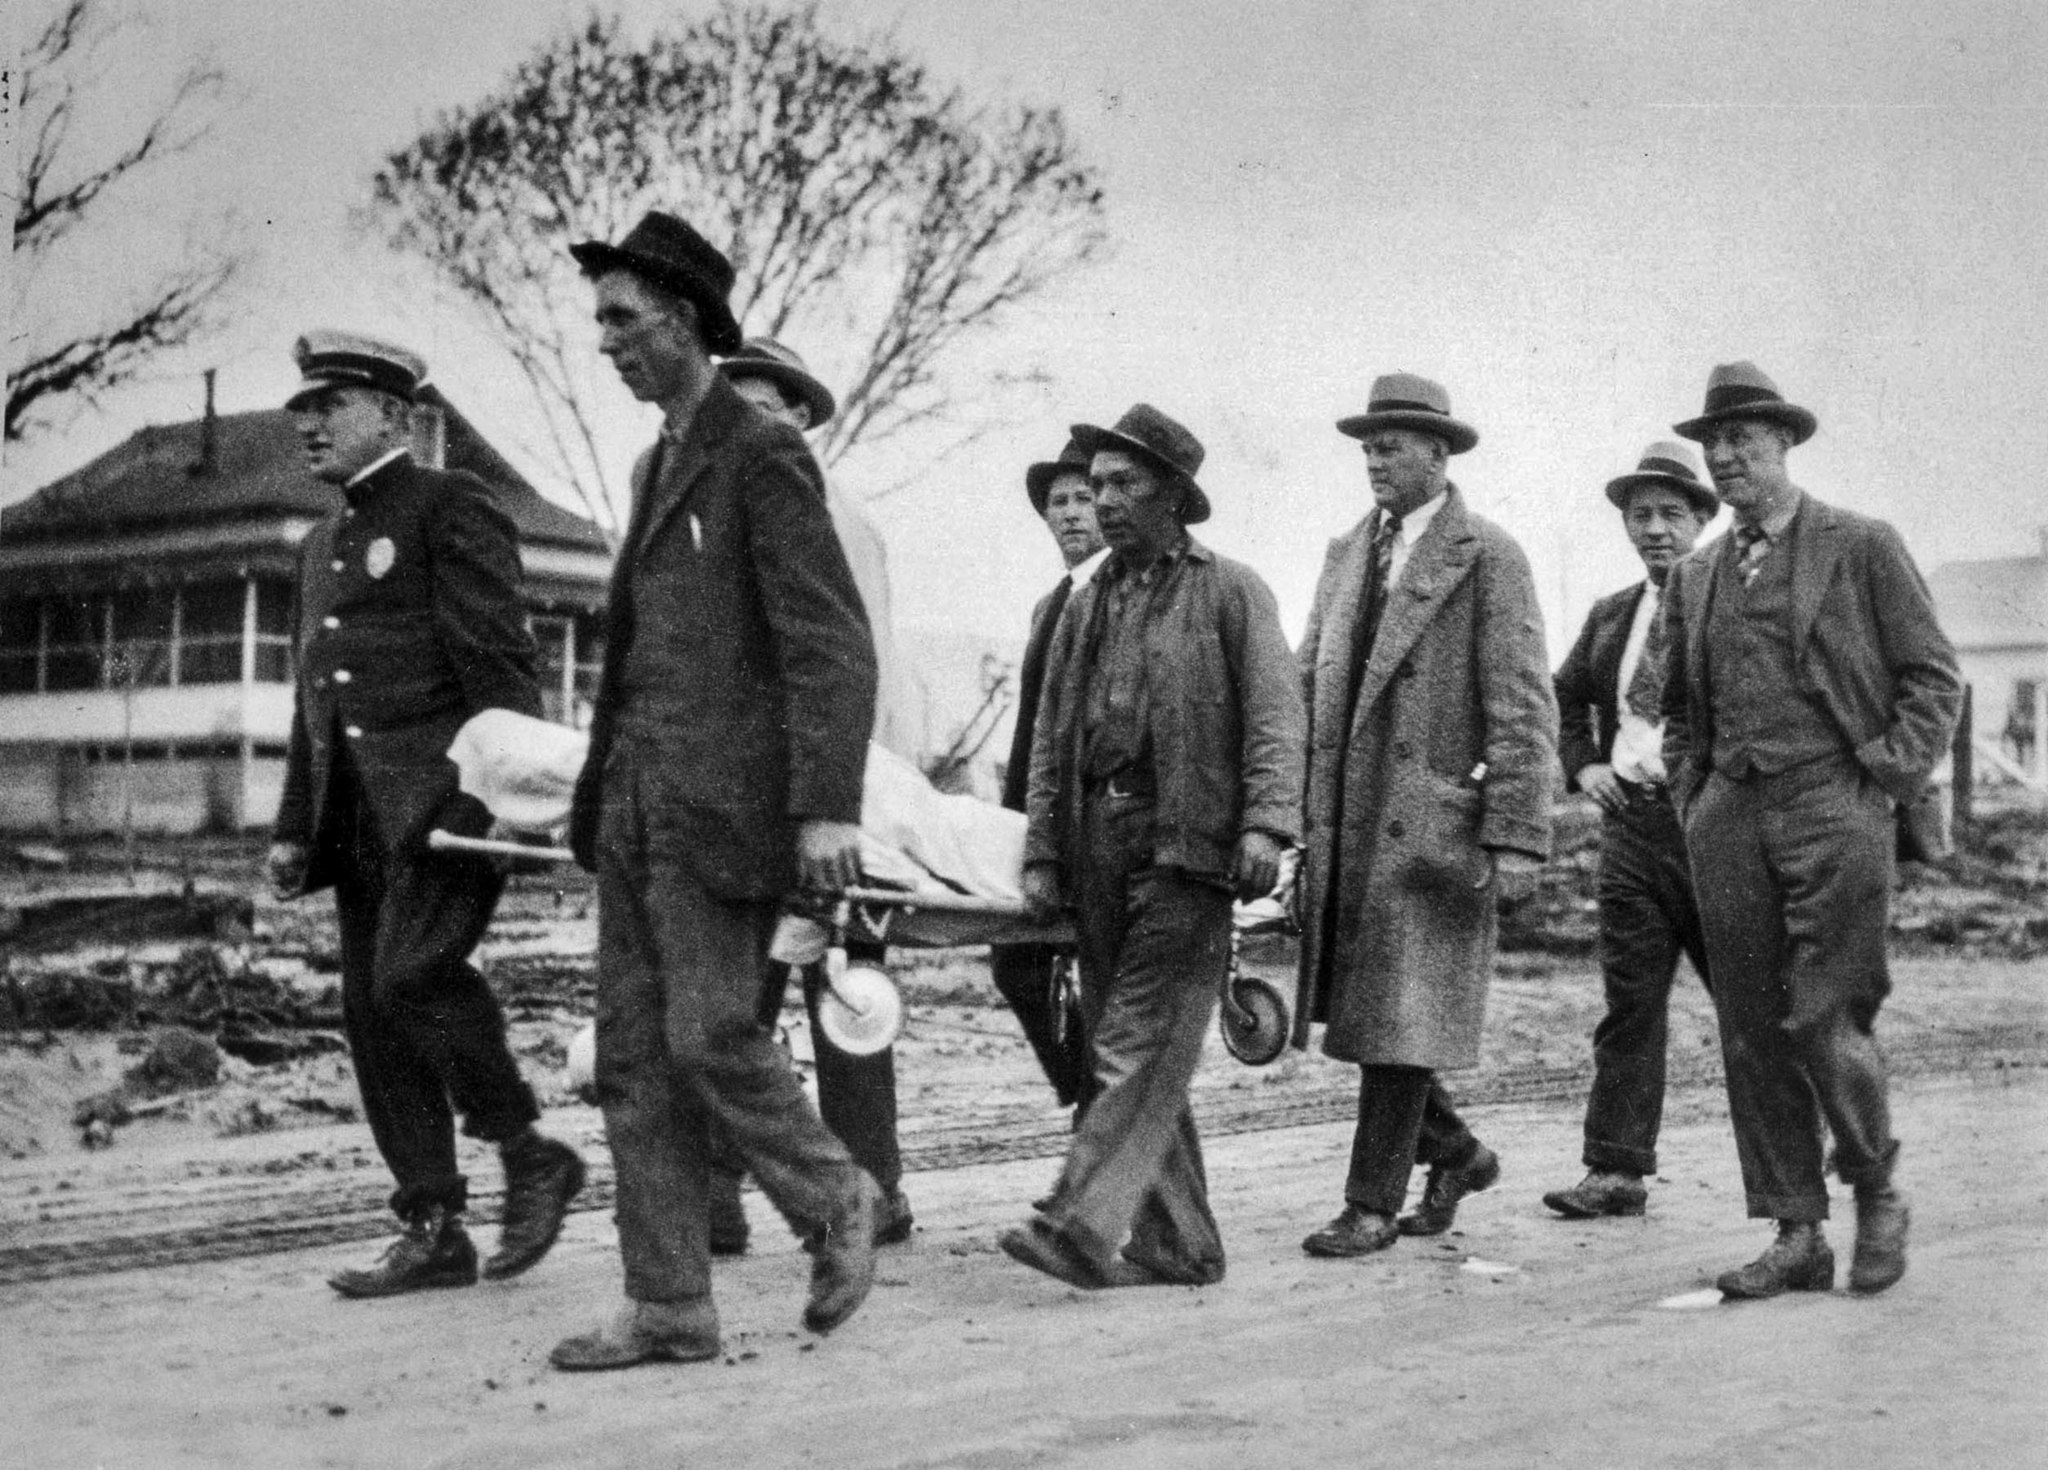 March 13, 1928: Relief workers carrying remains of victim of St. Francis Dam collapse. This photo wa